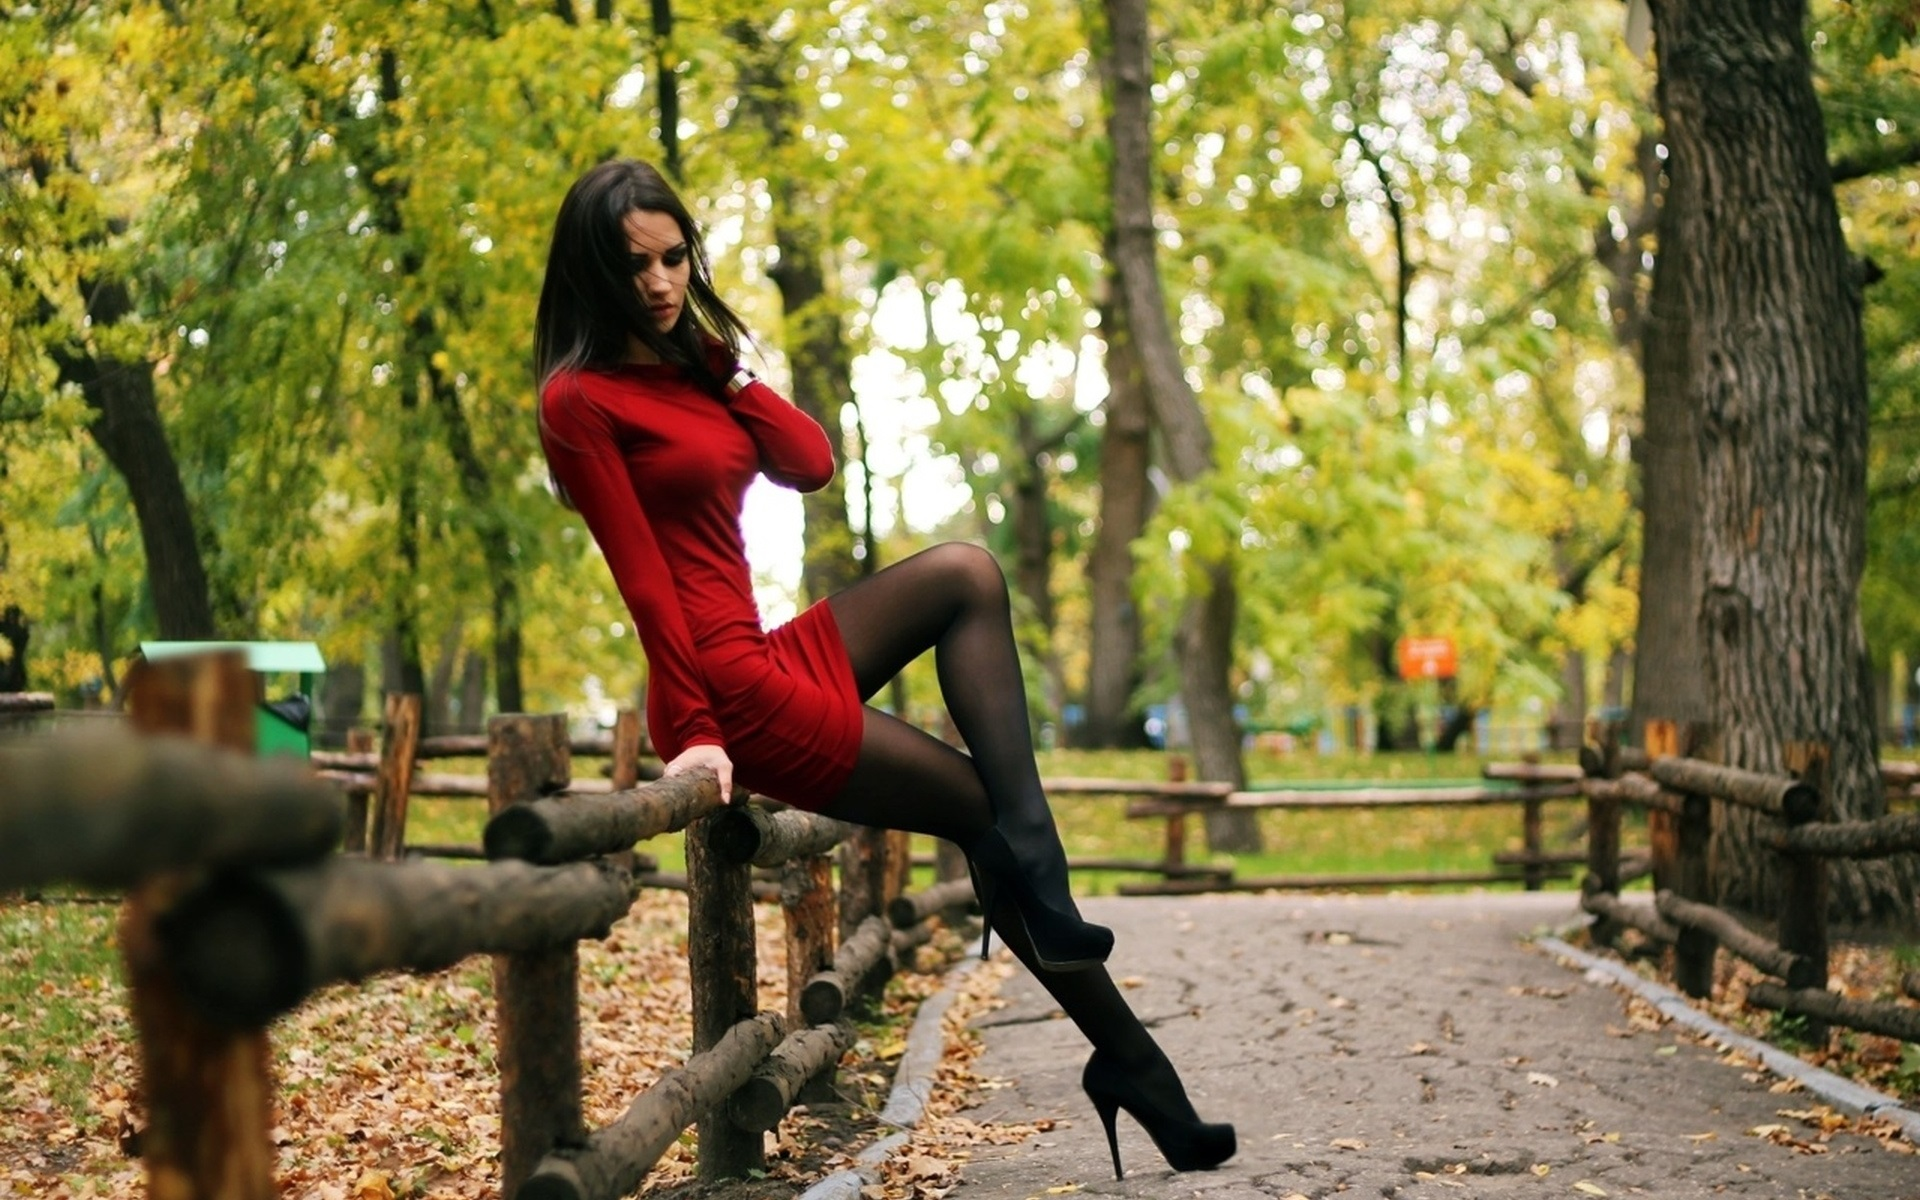 Wallpaper Sexy Red Dress Girl Stockings Park Trees